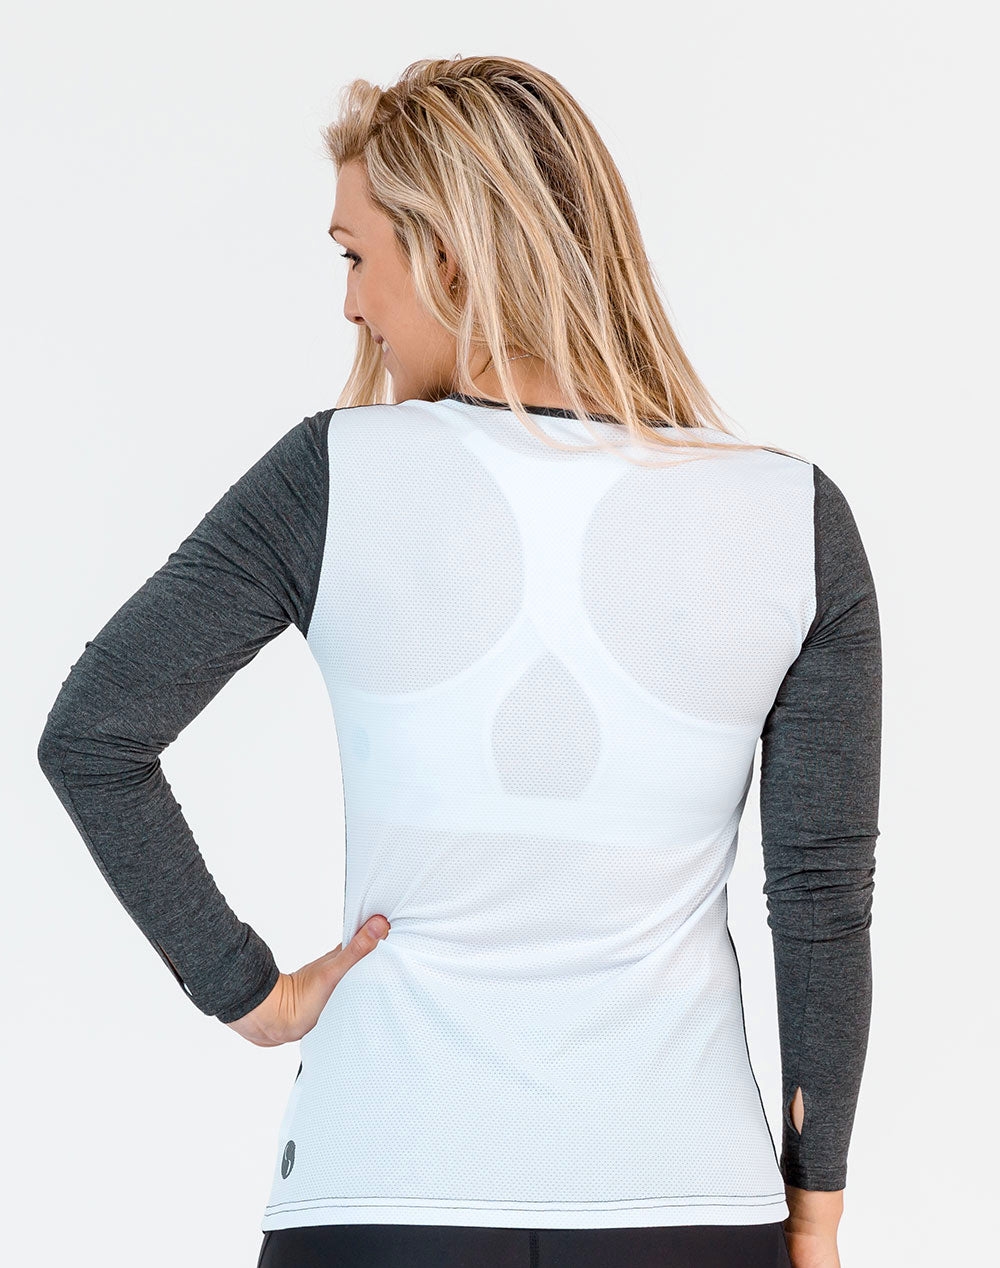 side view of a mom wearing a gray and white maternity top with long sleeves